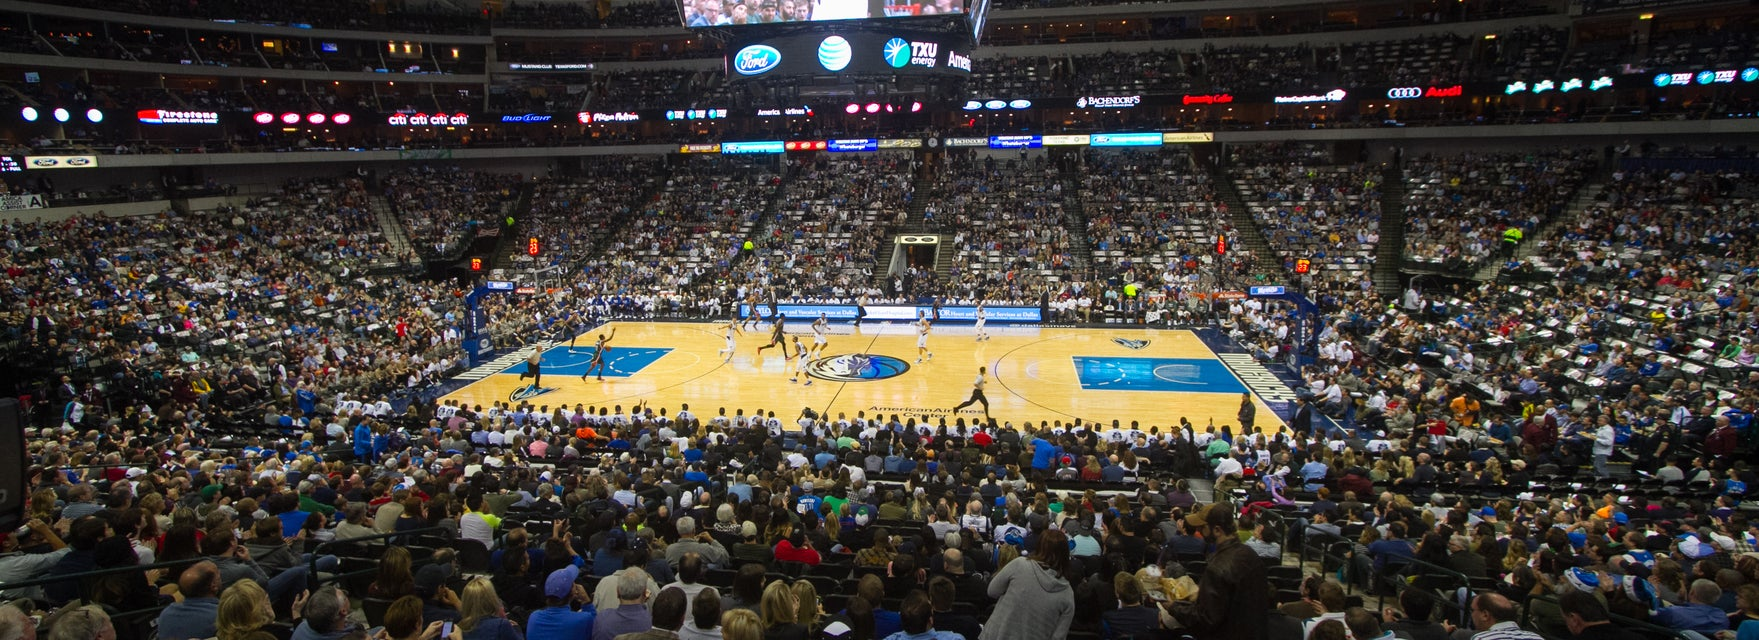 Dallas Mavericks Vs La Clippers Tickets Gametime